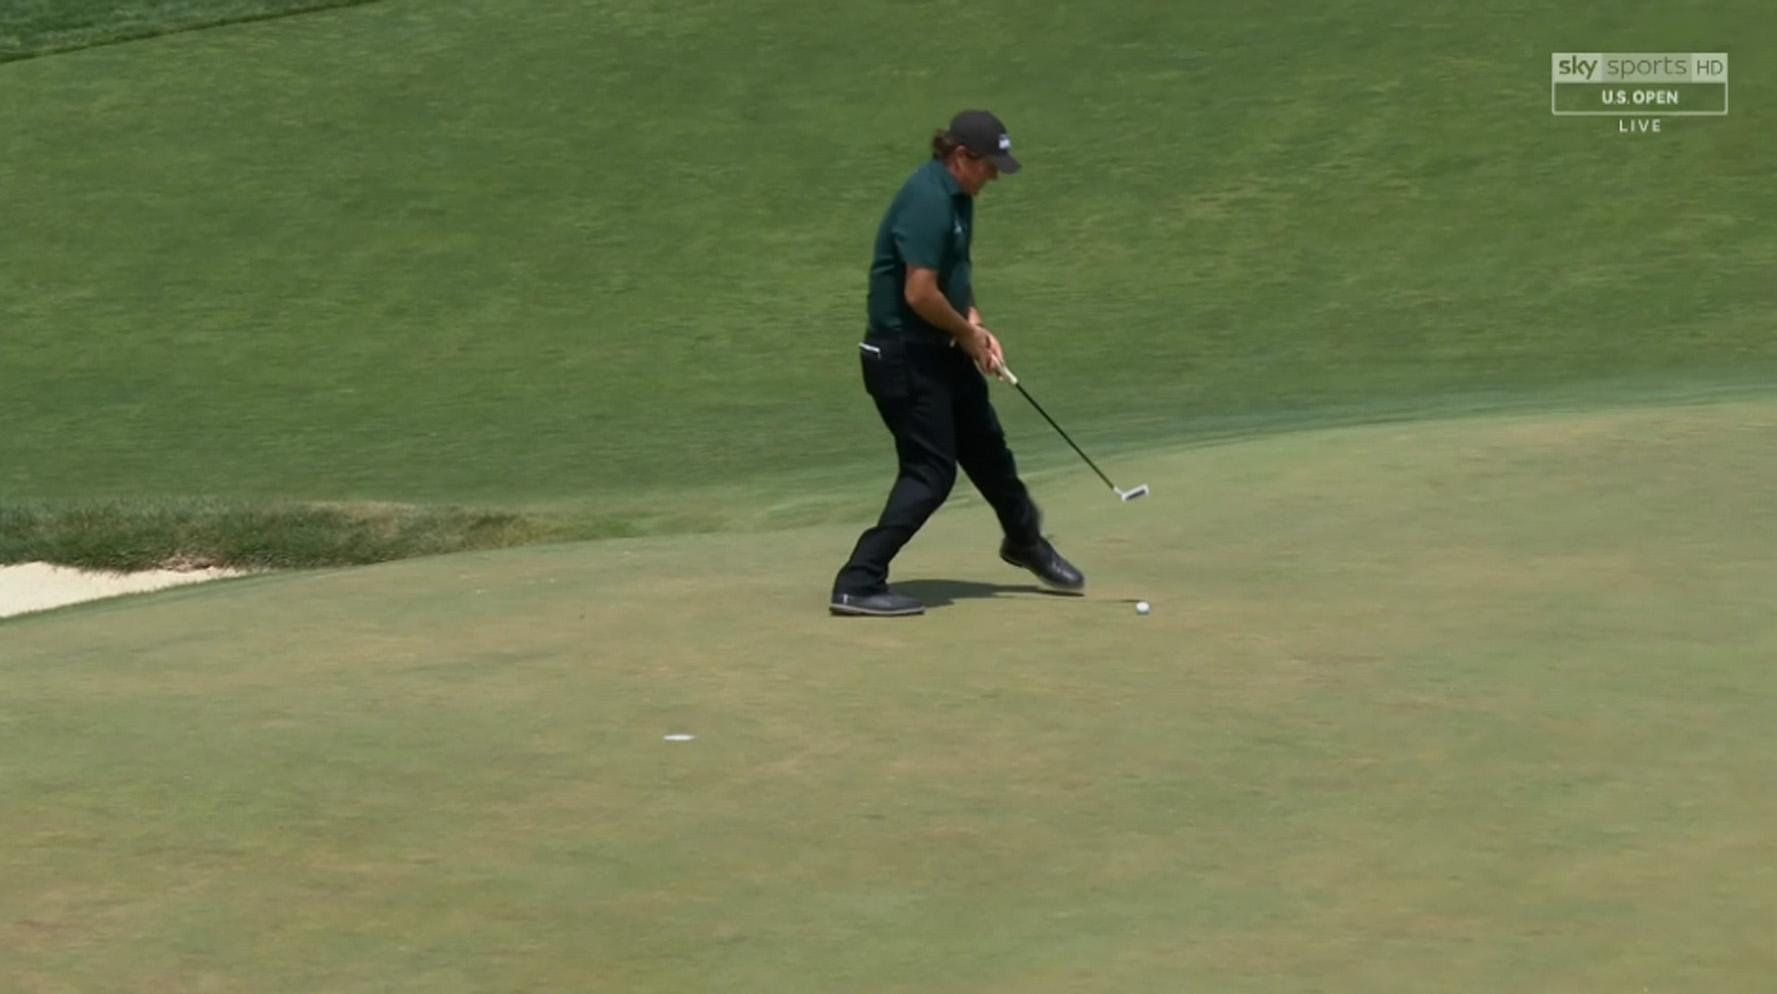 Phil Mickelson hit a moving ball on day three to earn a two-stroke penalty